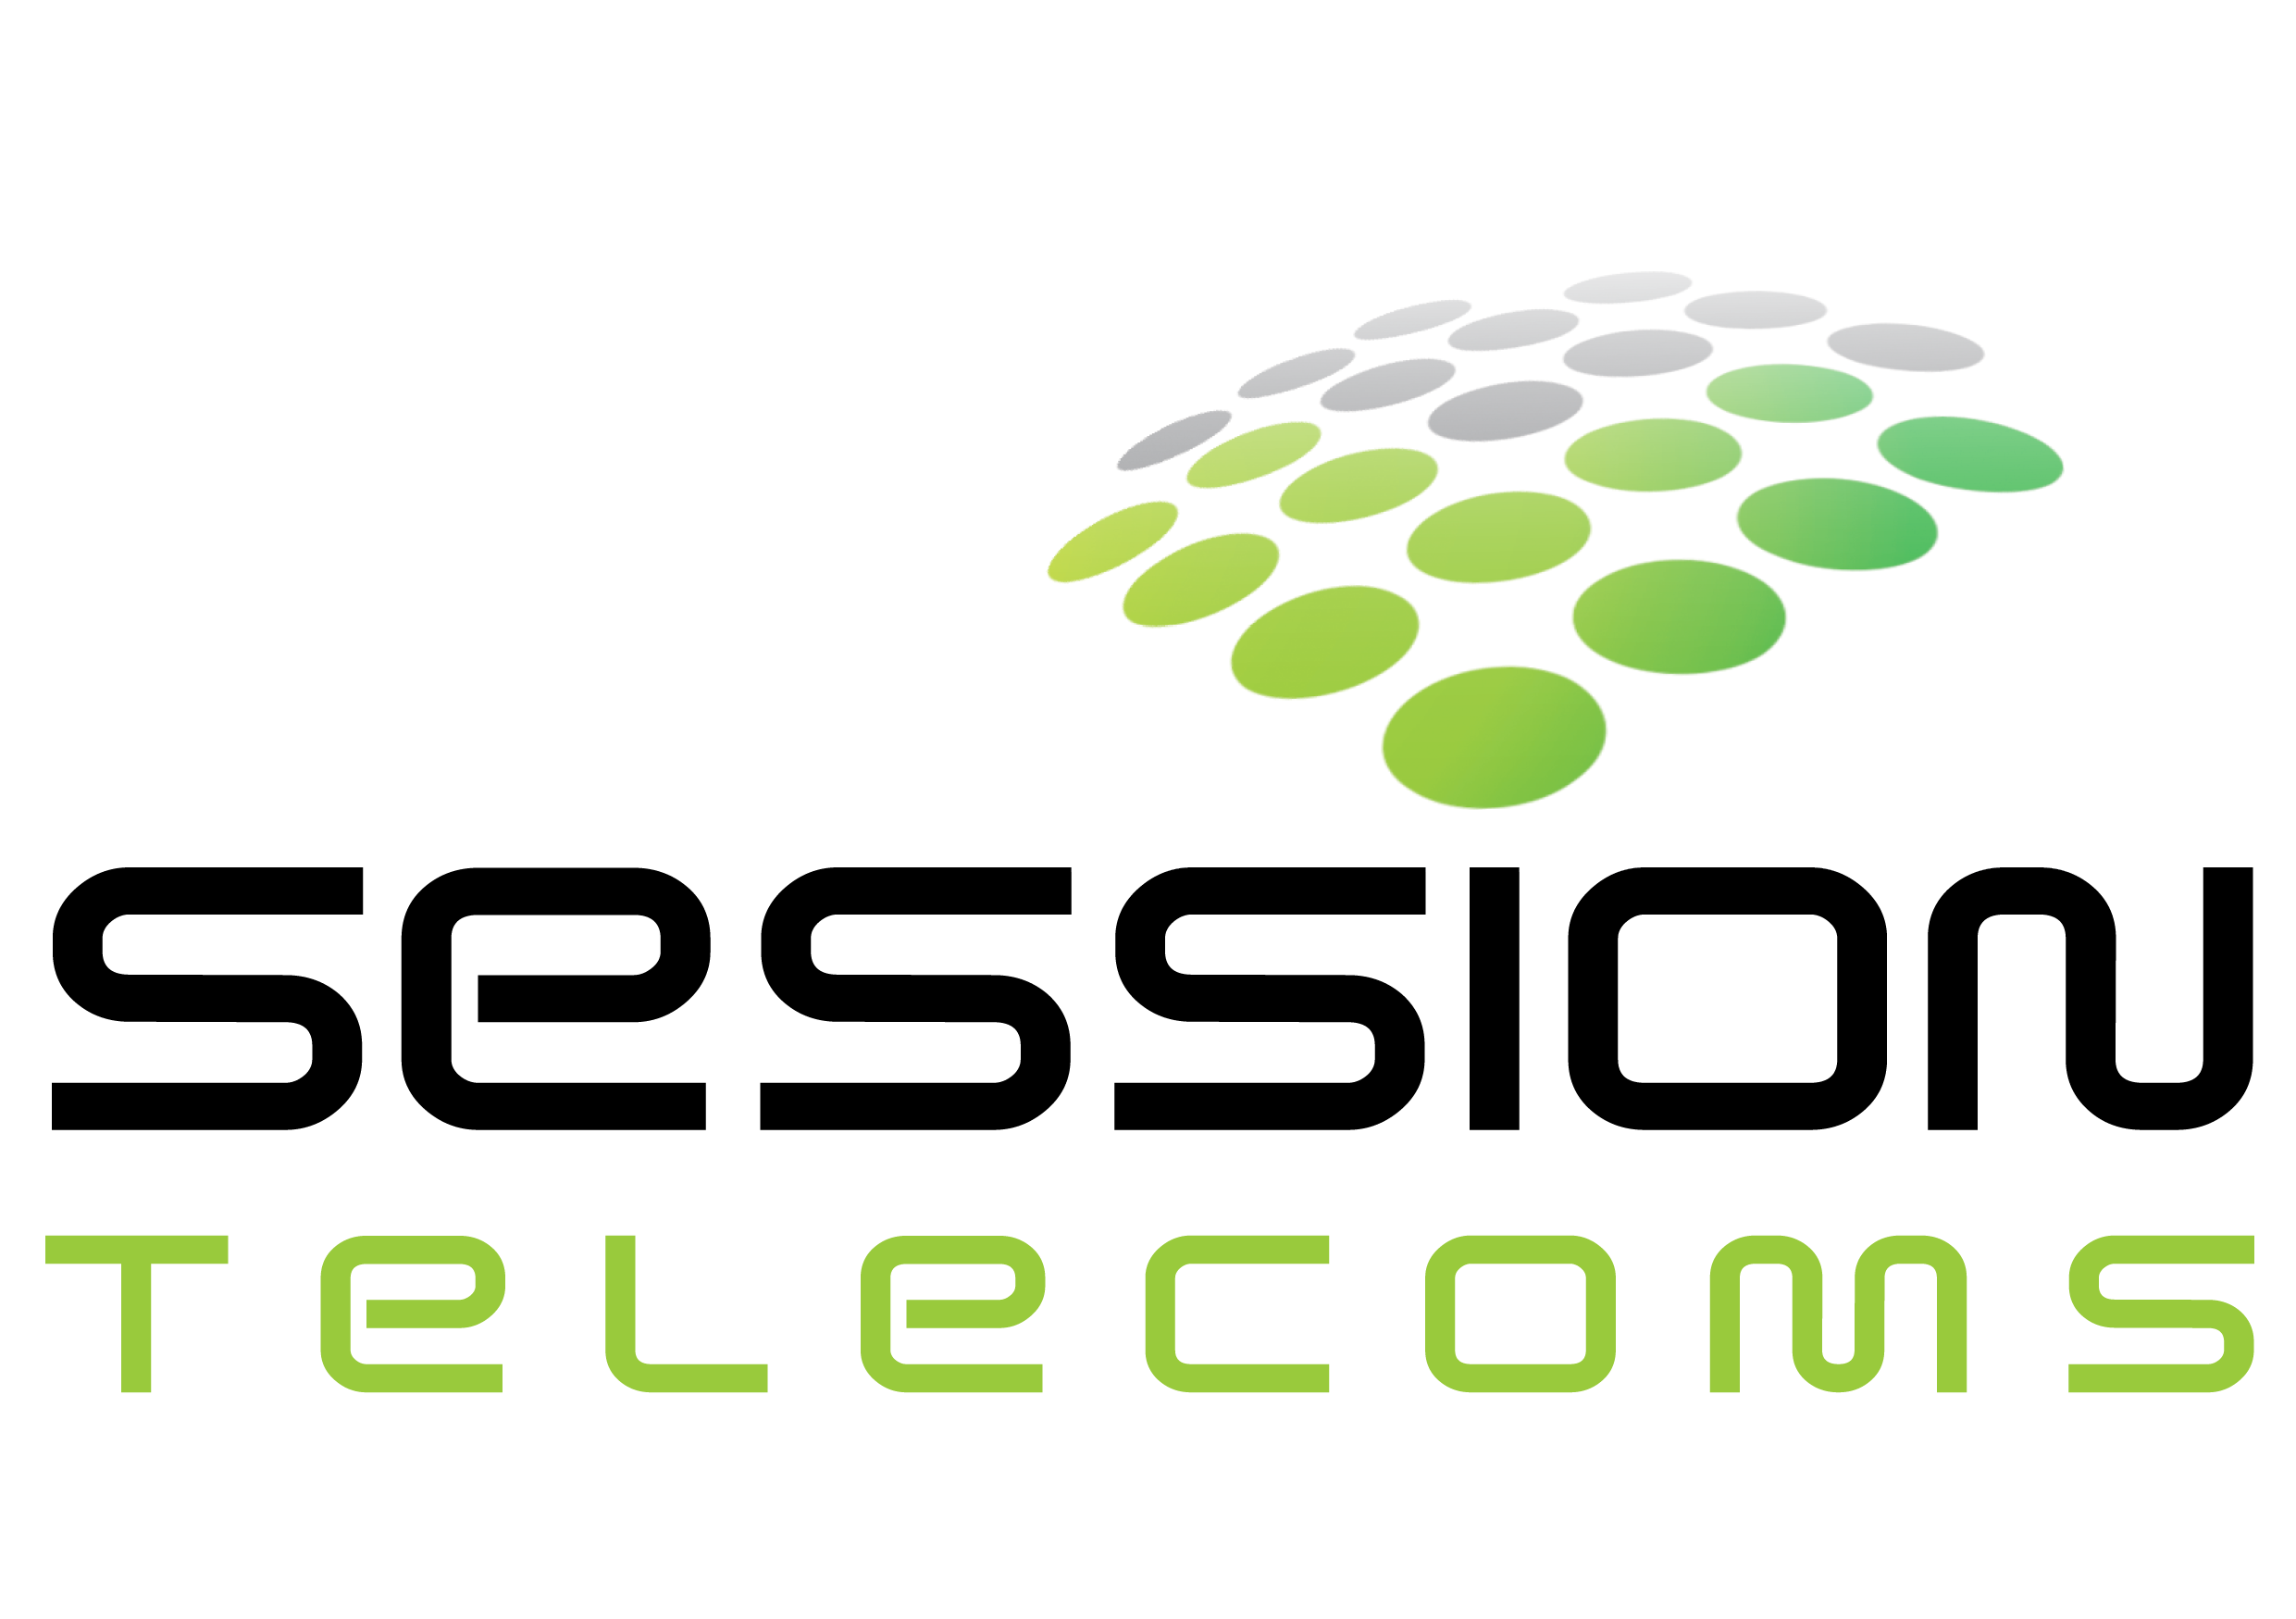 Sessions Telecoms